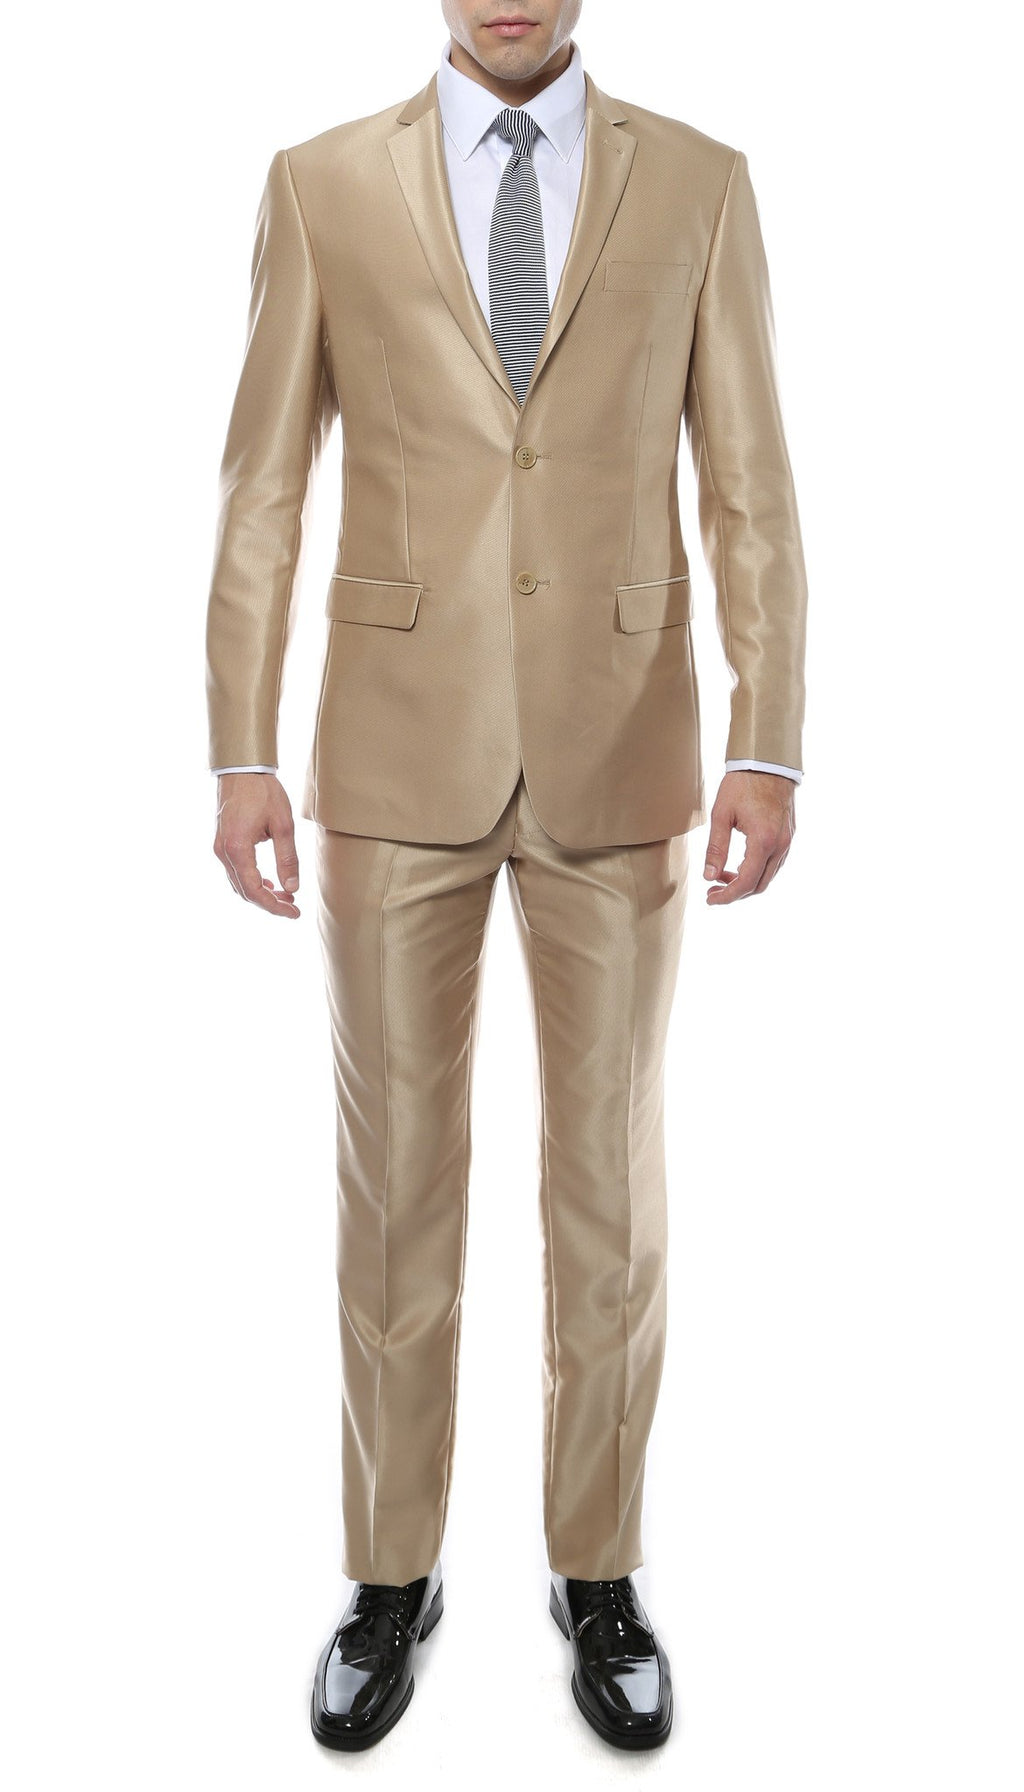 Oxford Champagne Sharkskin Slim Fit Suit - Giorgio's Menswear